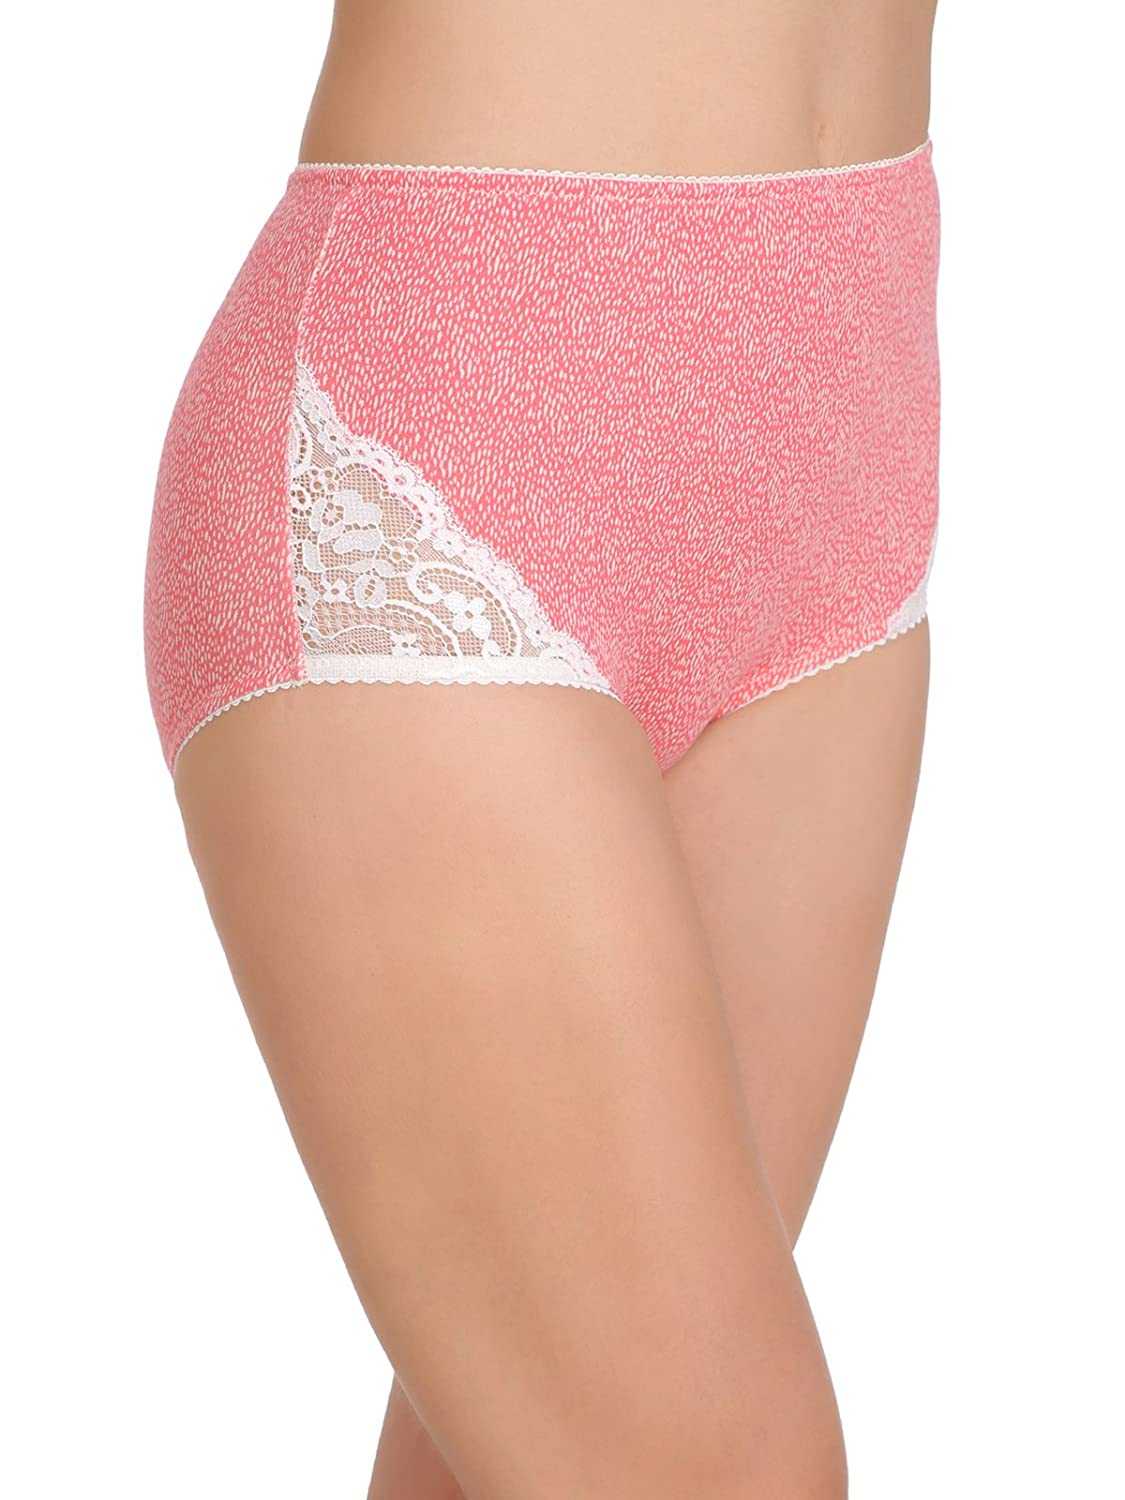 989139f623a Clovia Women s Cotton High Waist Printed Hipster Panty with Lace Sides   Amazon.in  Clothing   Accessories